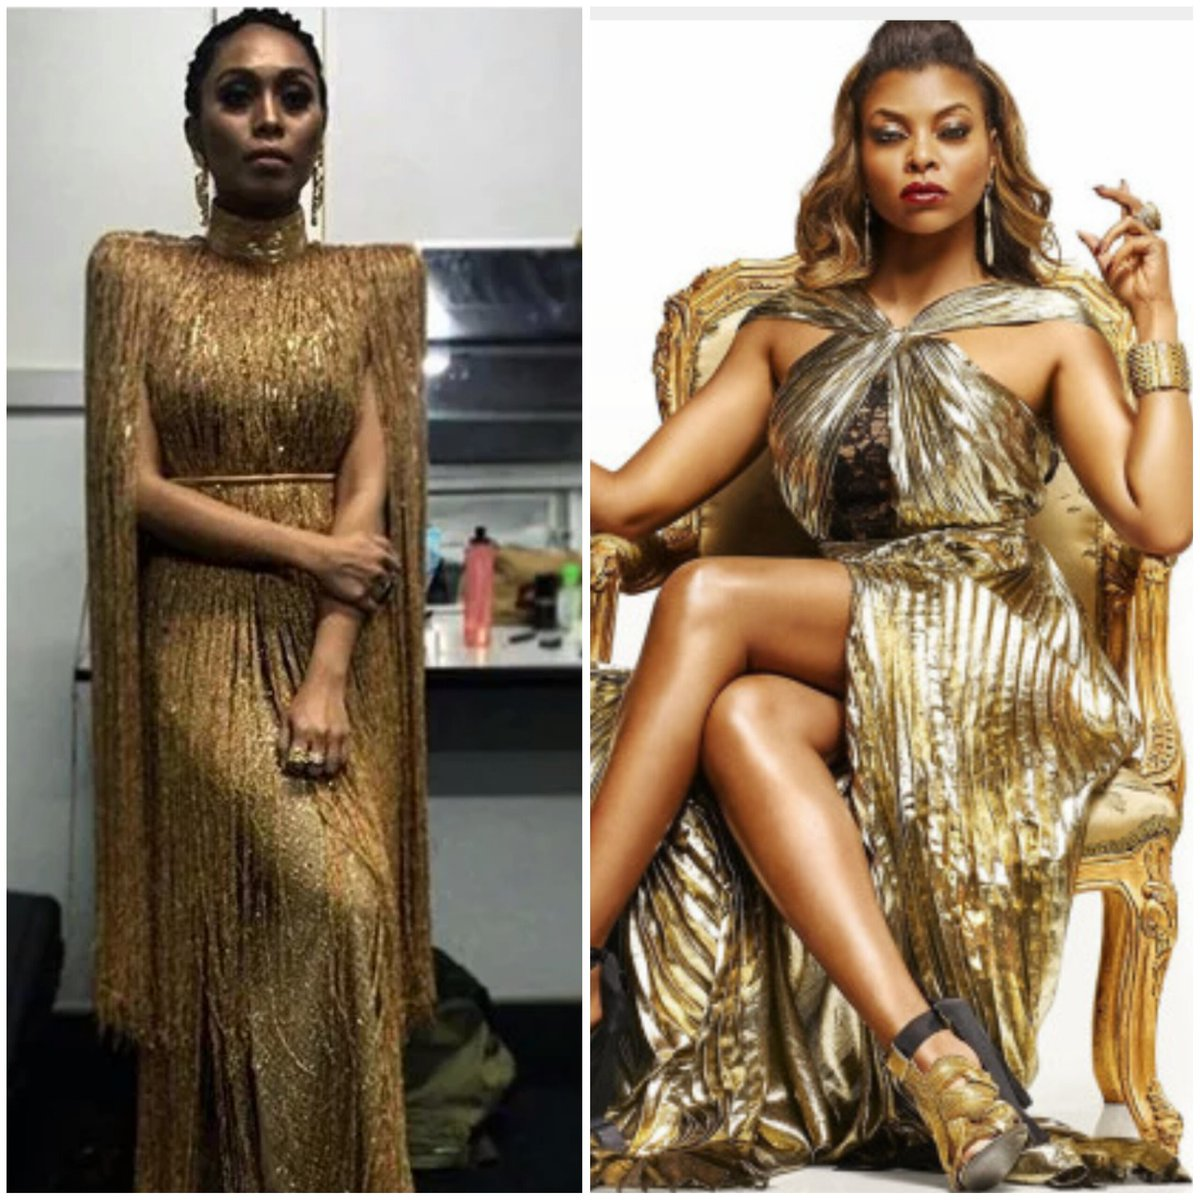 I think cookie lyon has found her long lost sister!! #empireseason3? https://t.co/cDIsX6gsaj